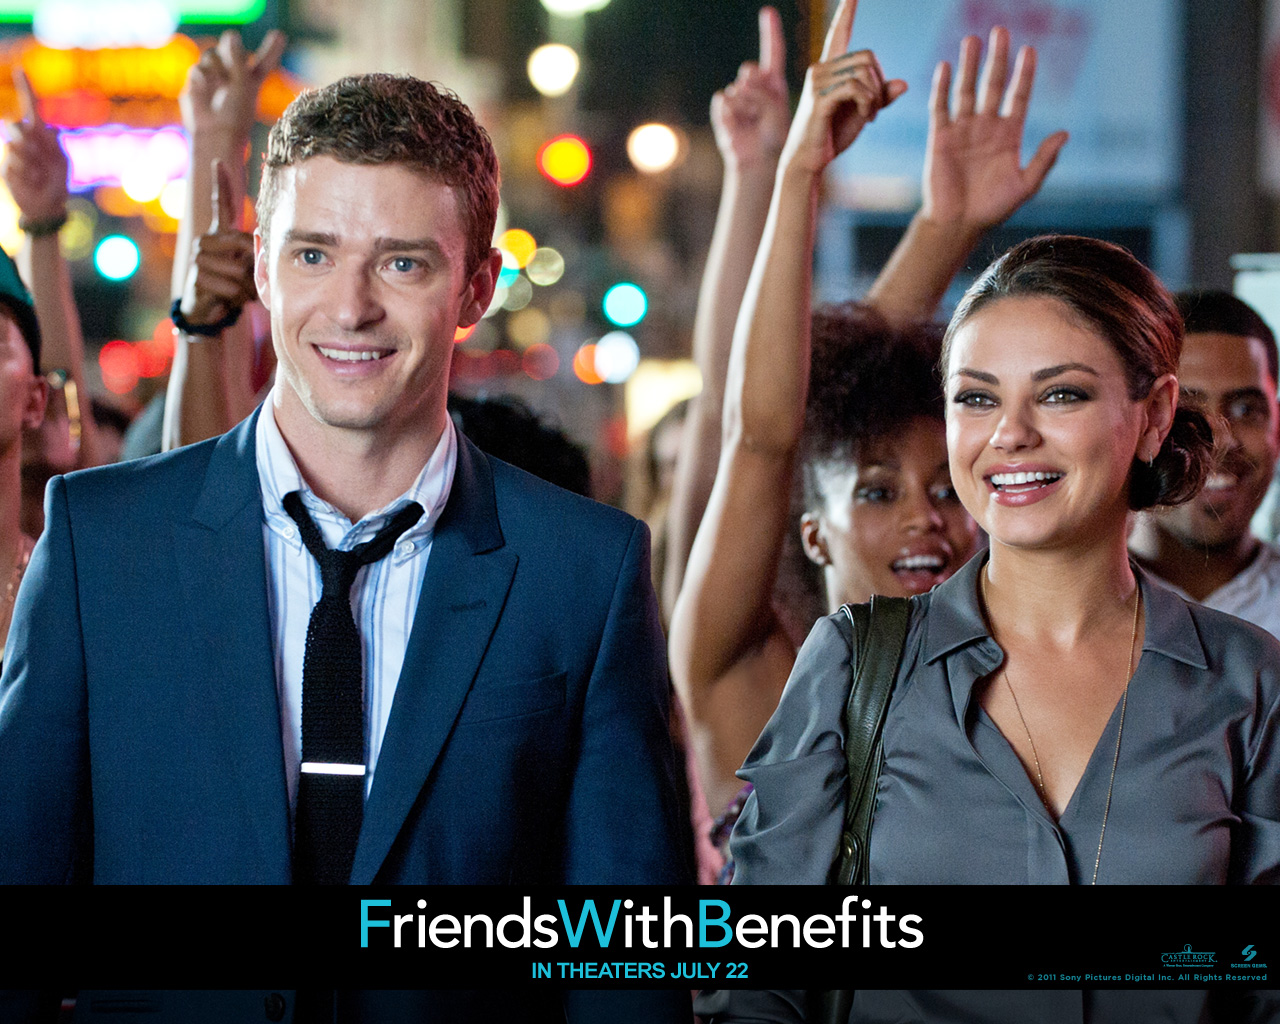 http://3.bp.blogspot.com/-lBxN7L_HMkA/Tm8uQqxTGXI/AAAAAAAACac/APnT1b_dWHc/s1600/Justin_Timberlake_in_Friends_with_Benefits_Movie_14915.jpg